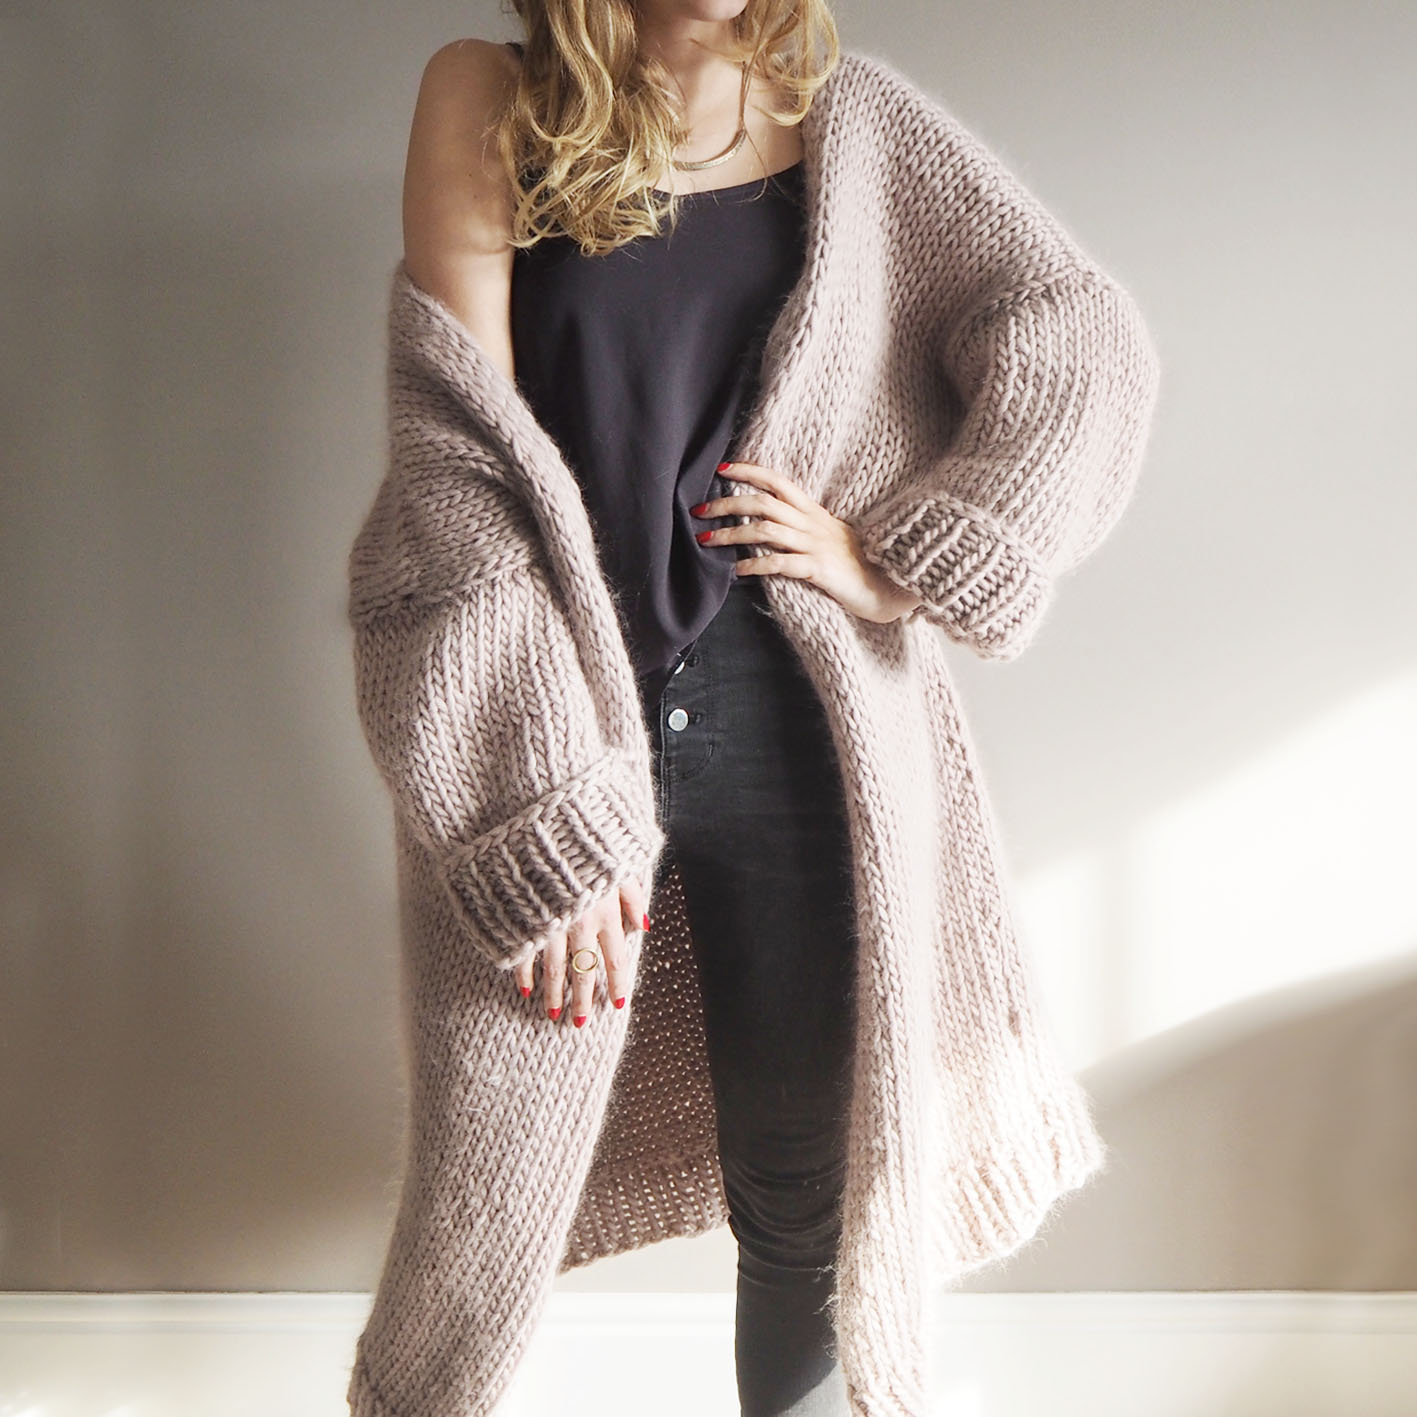 a0c3464a409b Dreamy Oversized Cardigan Knitting Pattern — Lauren Aston Designs